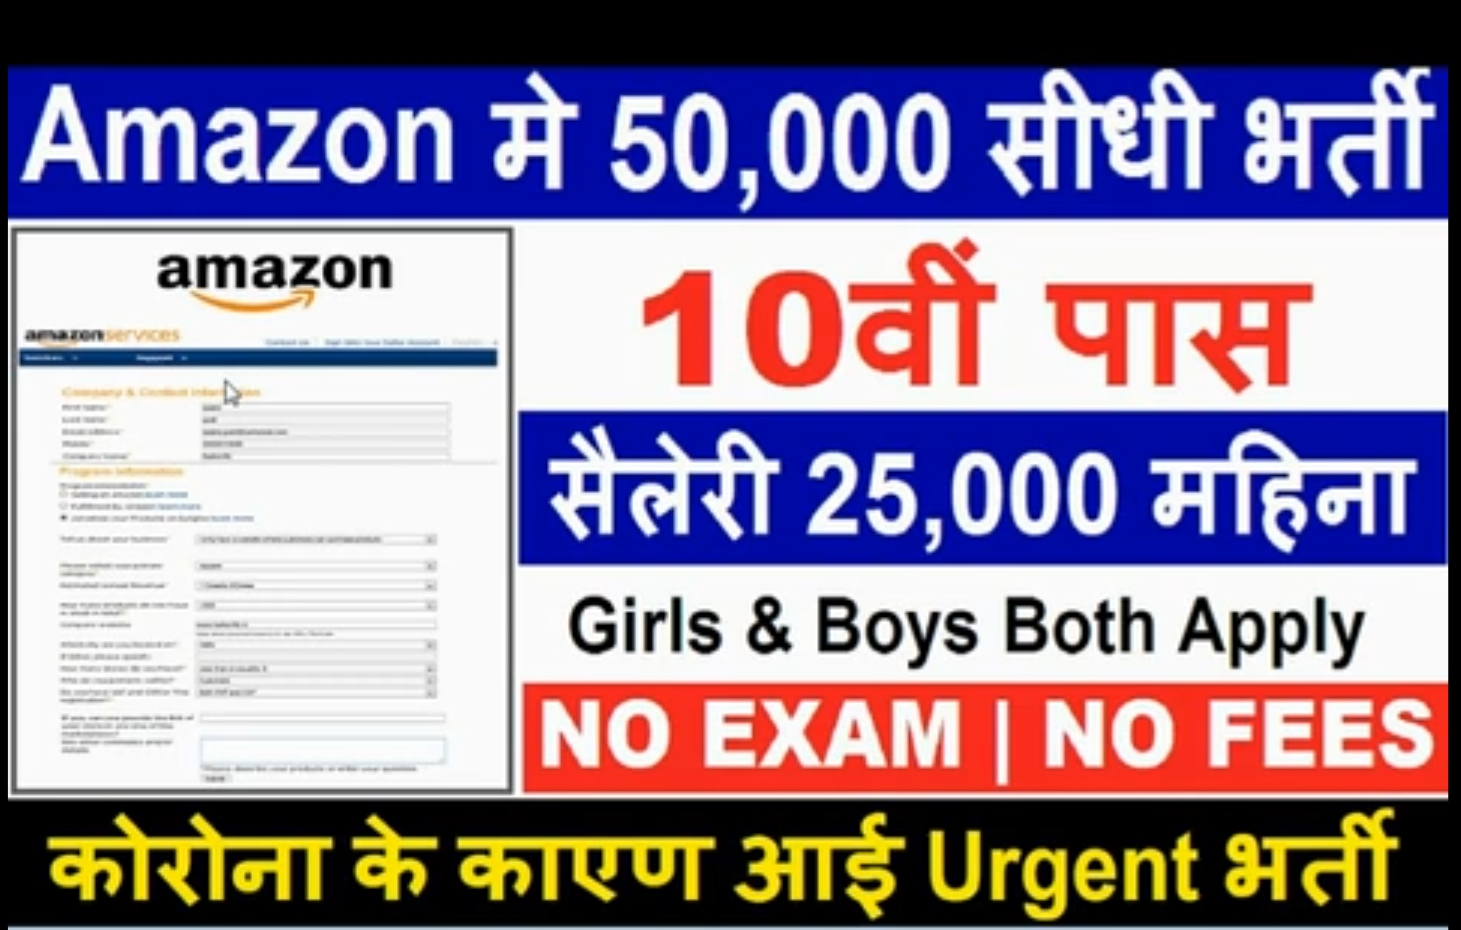 Amazon Recruitment Online Form 2020